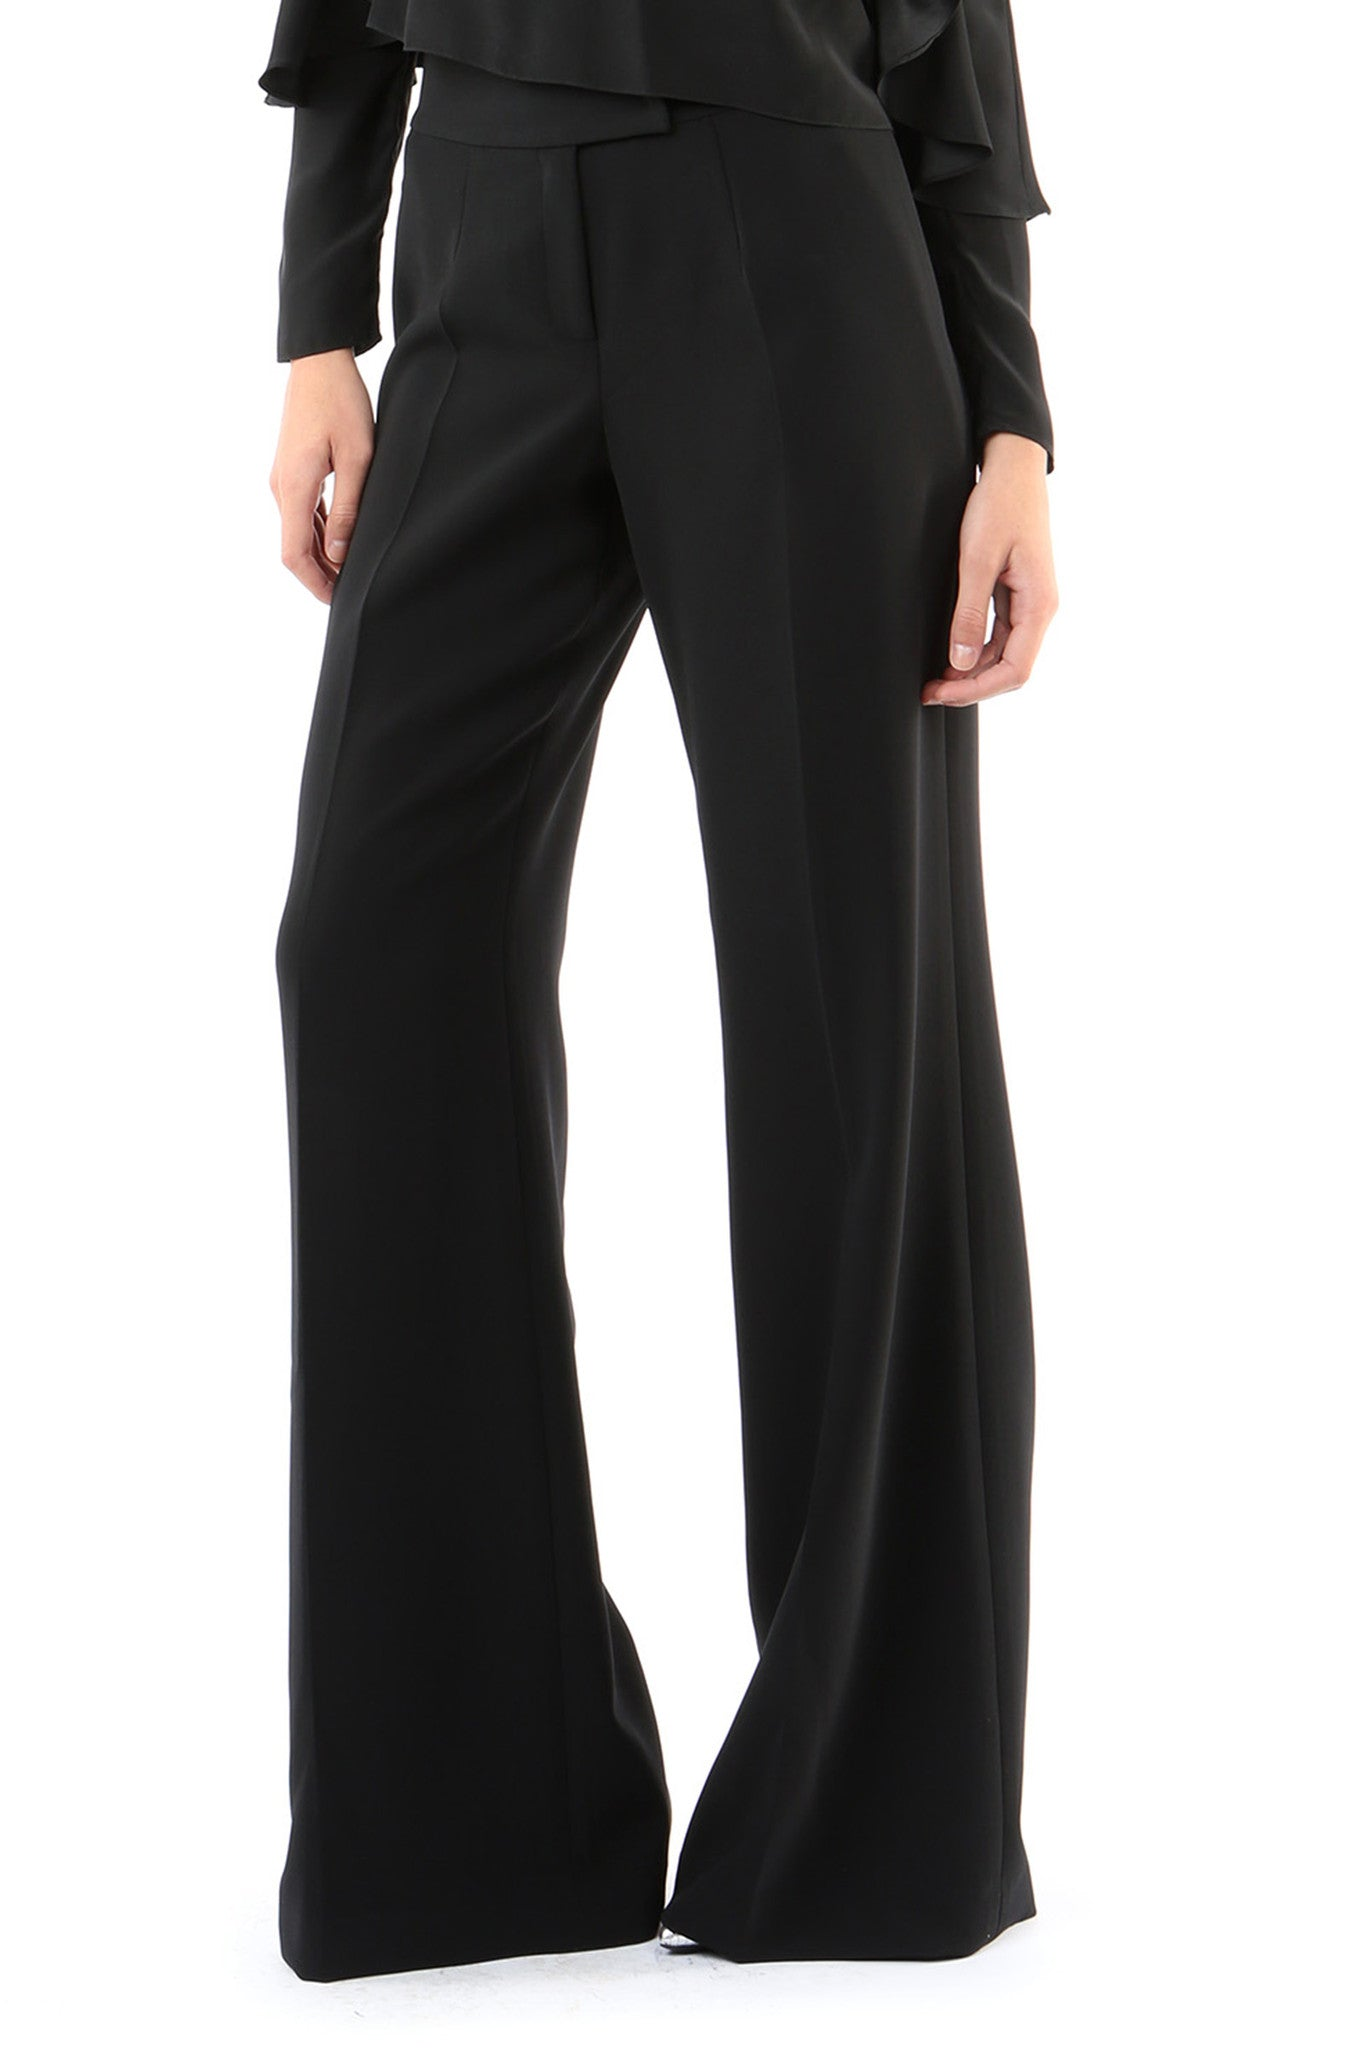 Jay Godfrey Black High-Waister Trousers - Front View